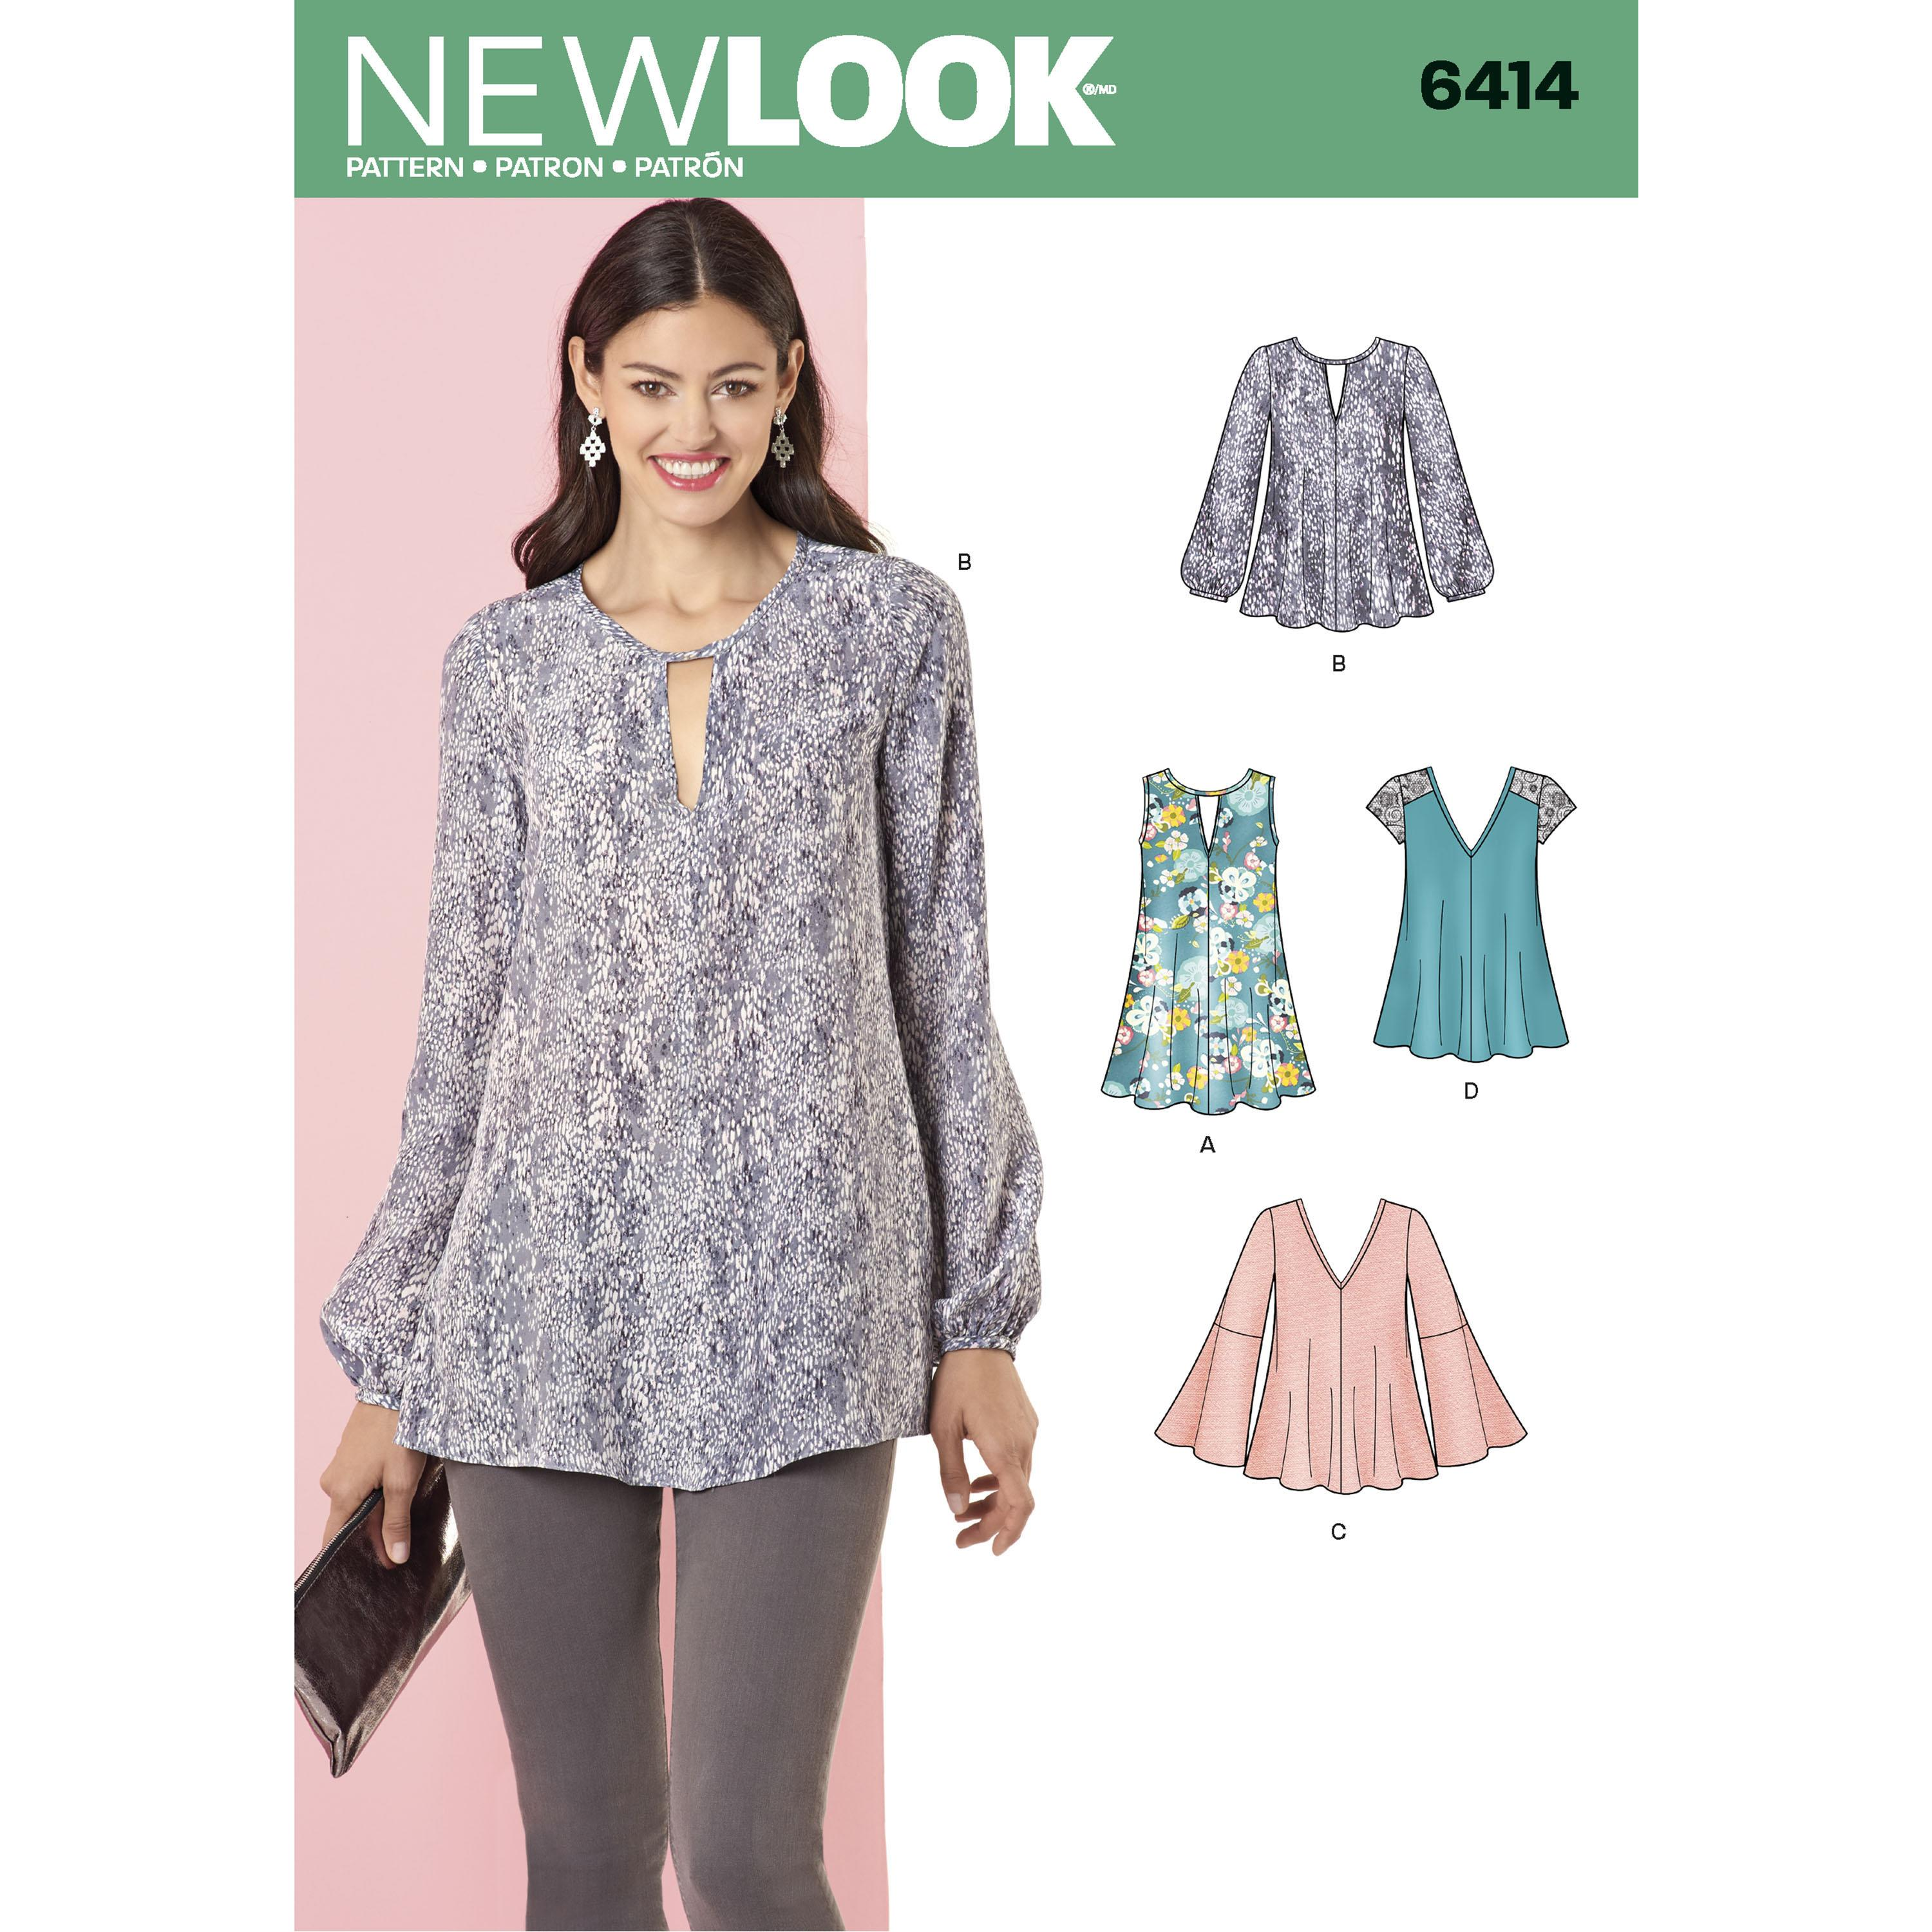 NewLook N6414 Misses' Tunic and Top with Neckline Variations